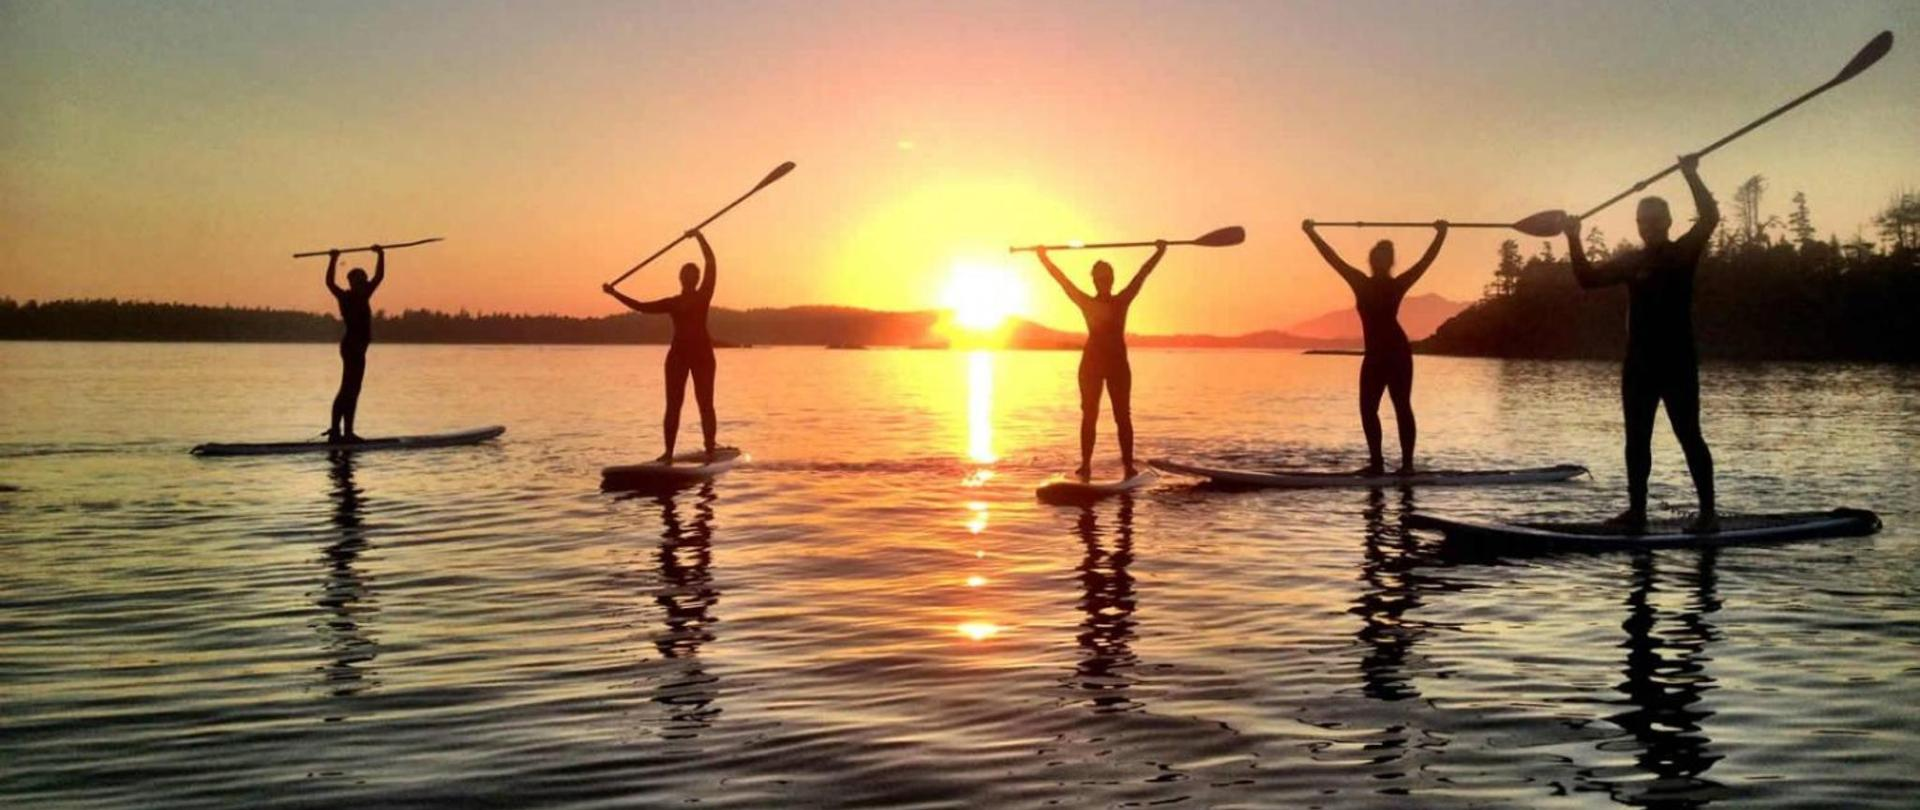 Tofino-Paddle-Surf-Stand-Up-Paddle-Boarding-Group-Shot-1600x818.jpg